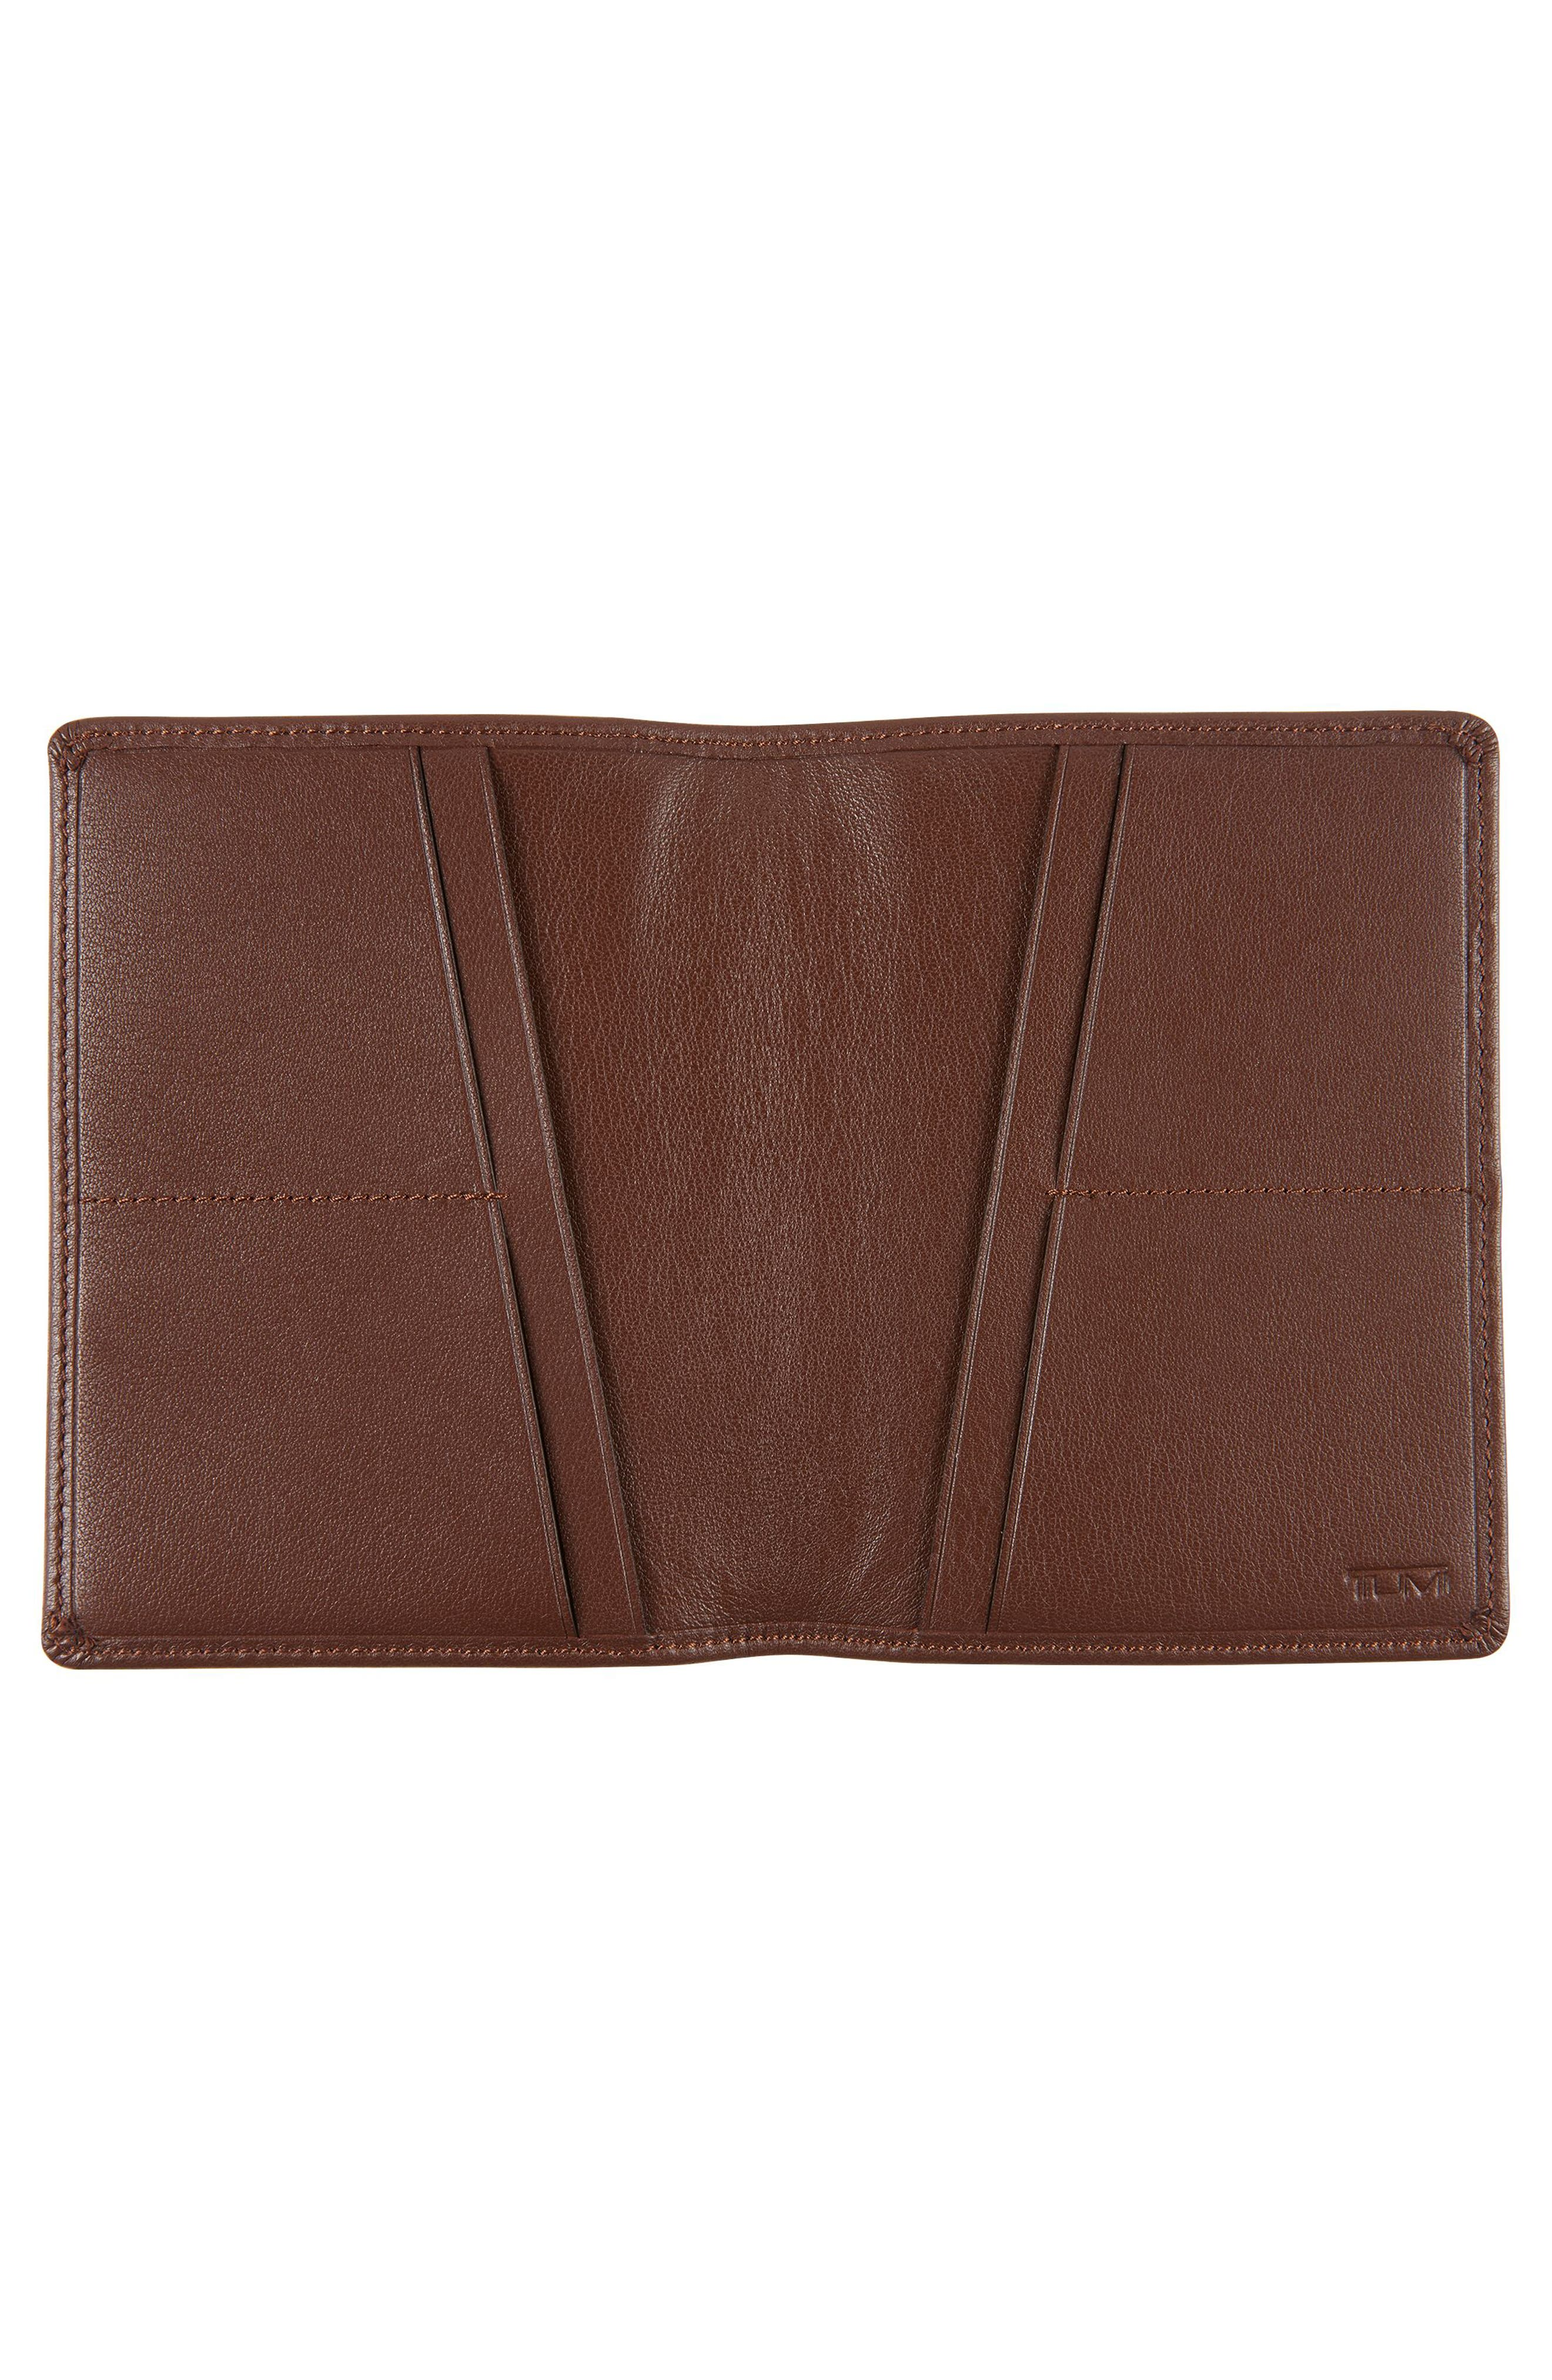 Leather Passport Cover,                             Alternate thumbnail 4, color,